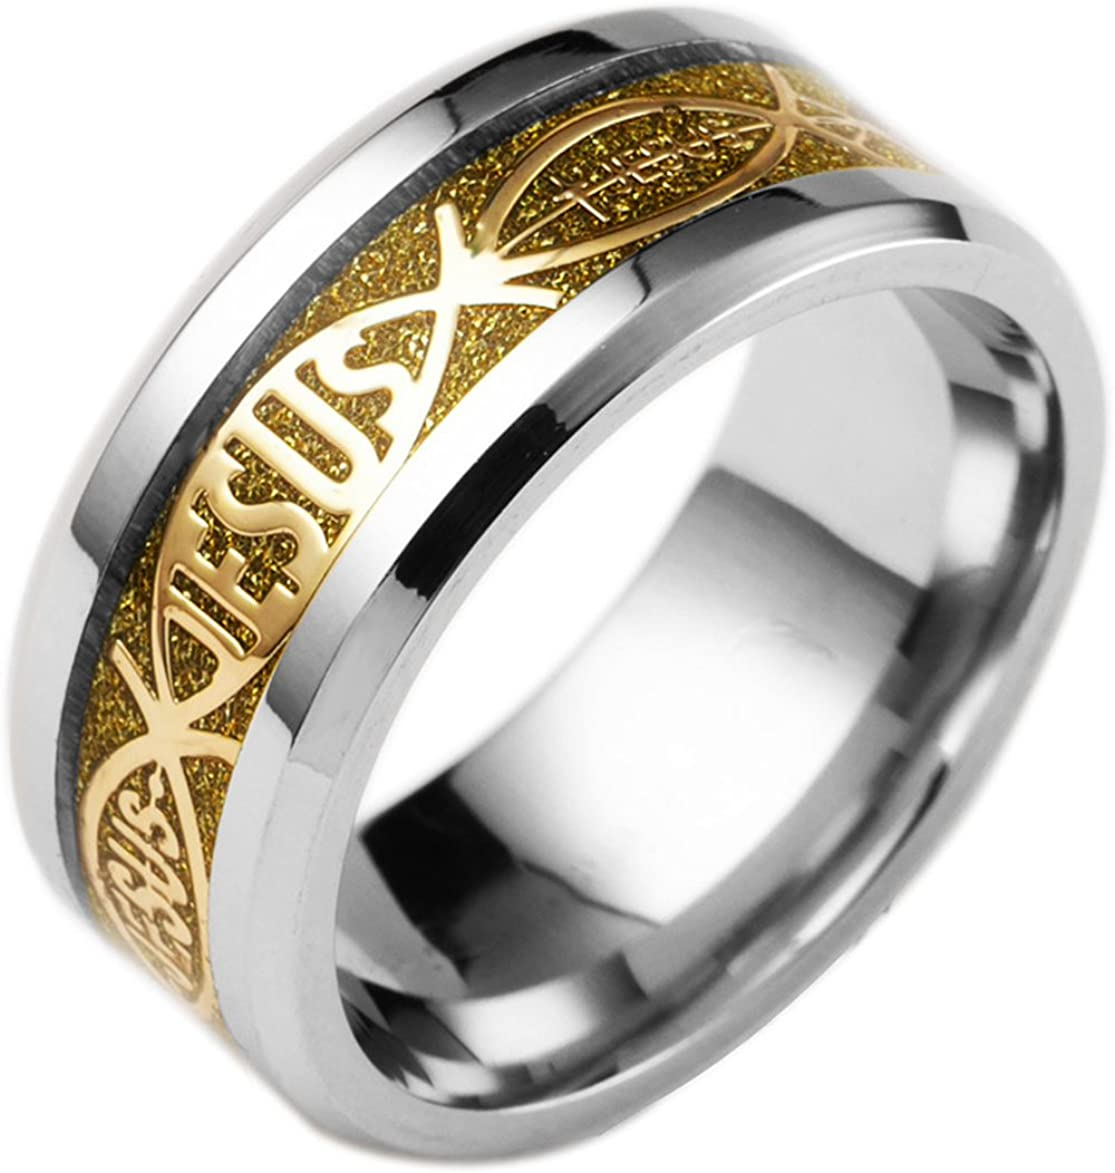 Stainless Steel Cut-out Alphabet S Link Band Ring